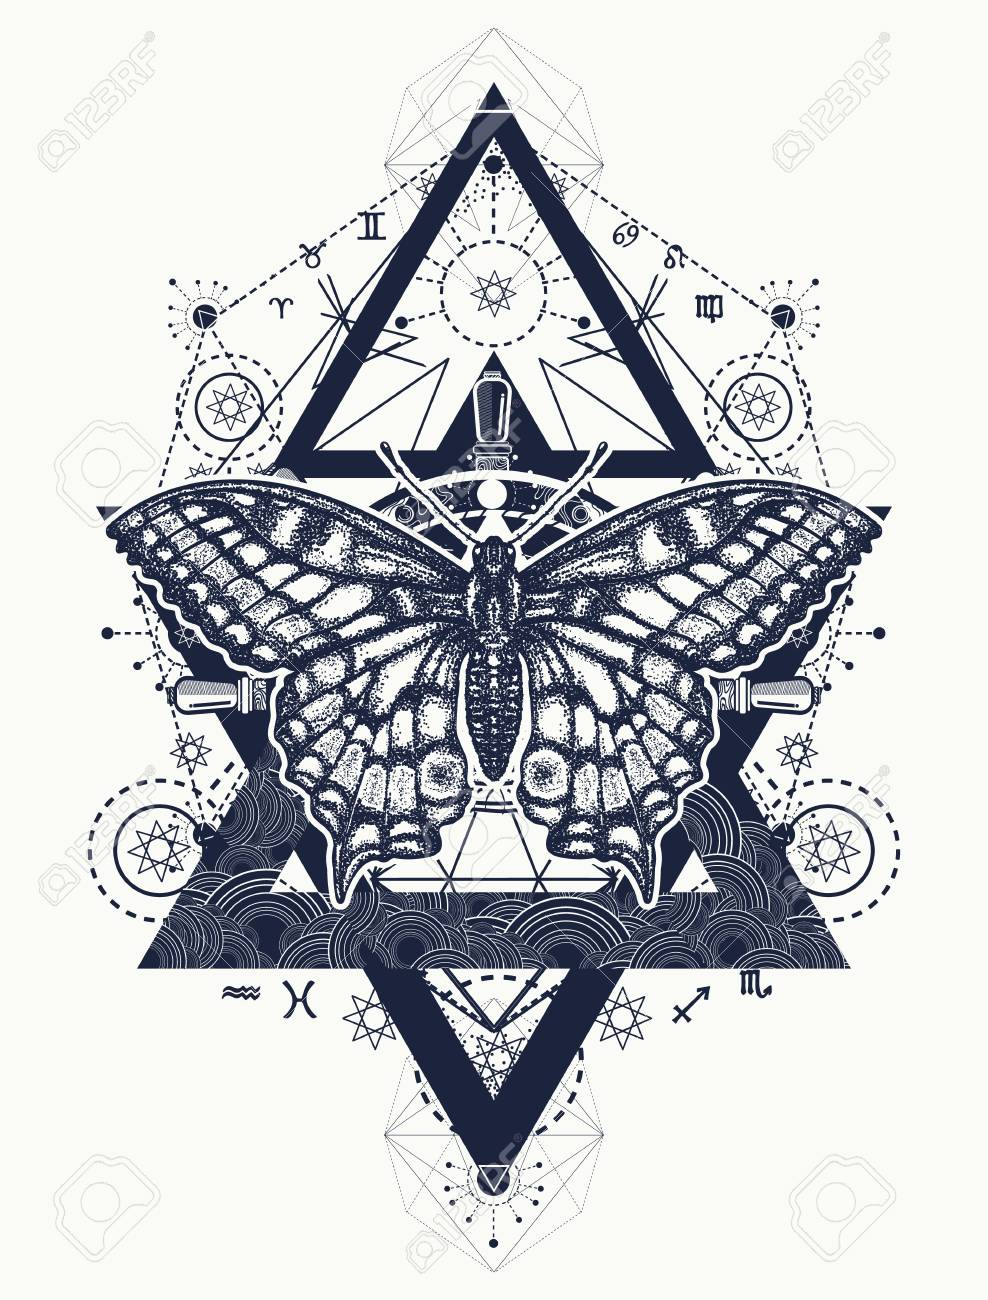 5b319b63bc9e5 Beautiful Swallowtail boho t-shirt design. Butterfly tattoo, geometrical  style. Mystical symbol